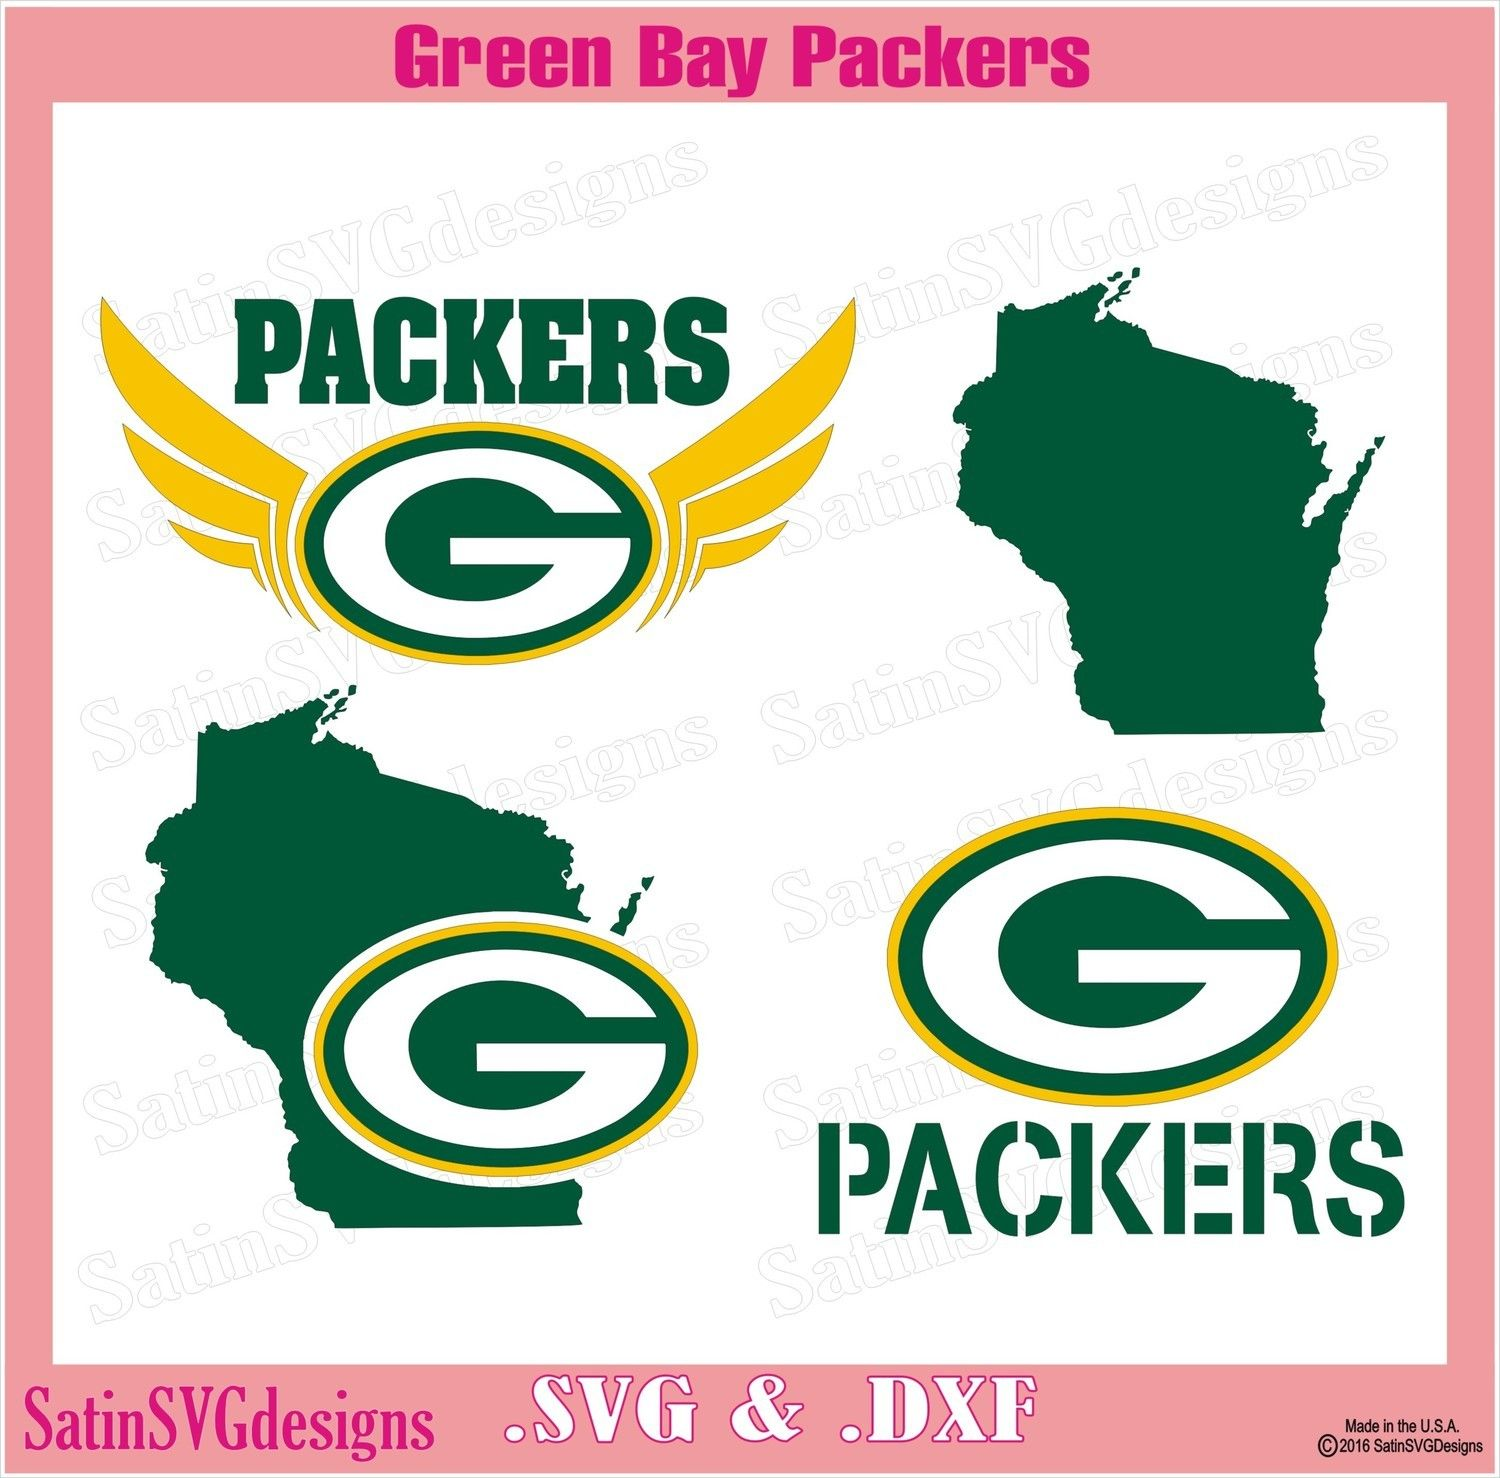 Green Bay Packers Design Set SVG Files, NFL Football